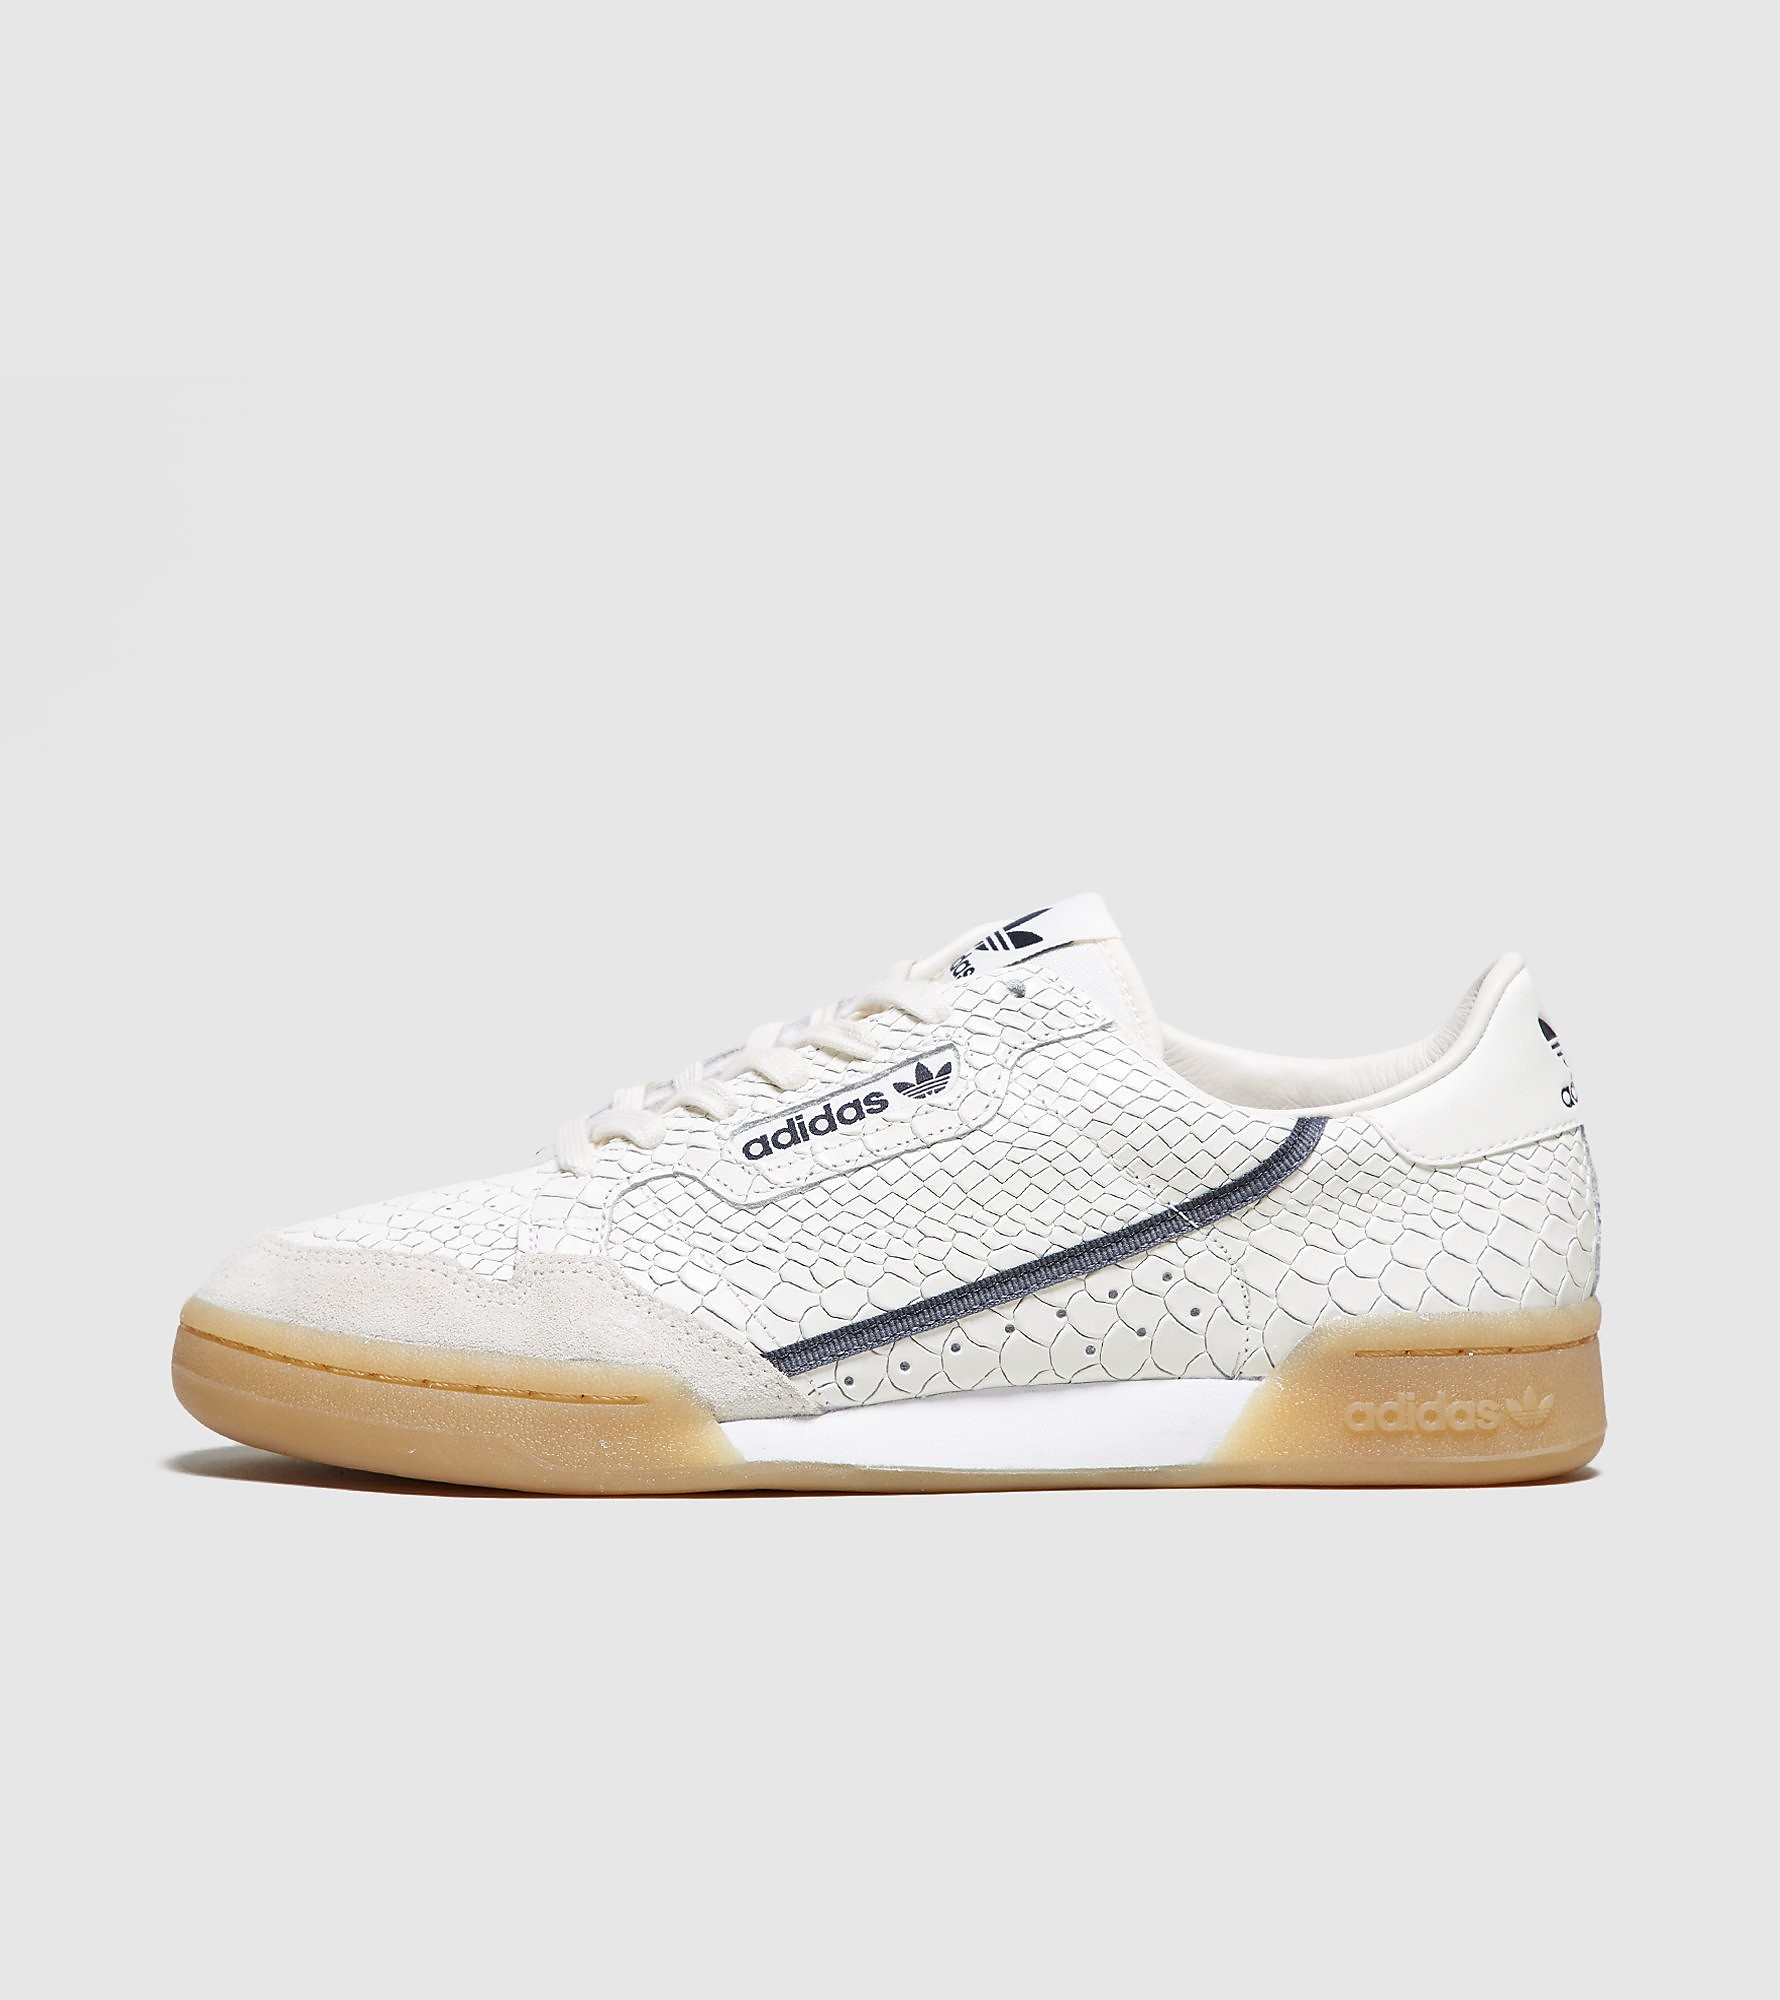 detailed look b1dfb cf823 47% adidas Originals Continental 80, White